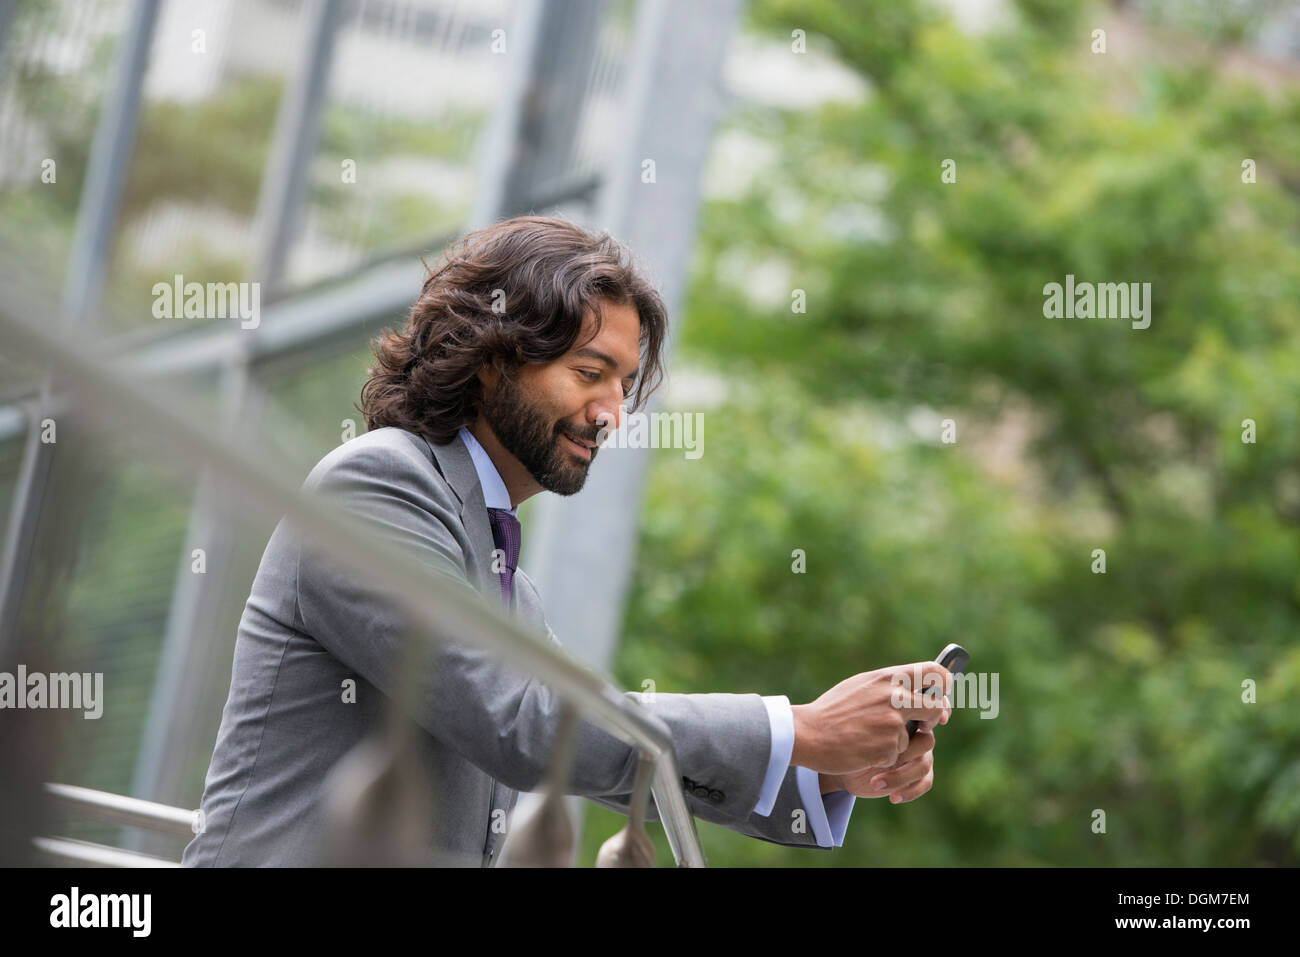 Business people. A man in a suit with brown curly hair and a beard. On his phone. Stock Photo